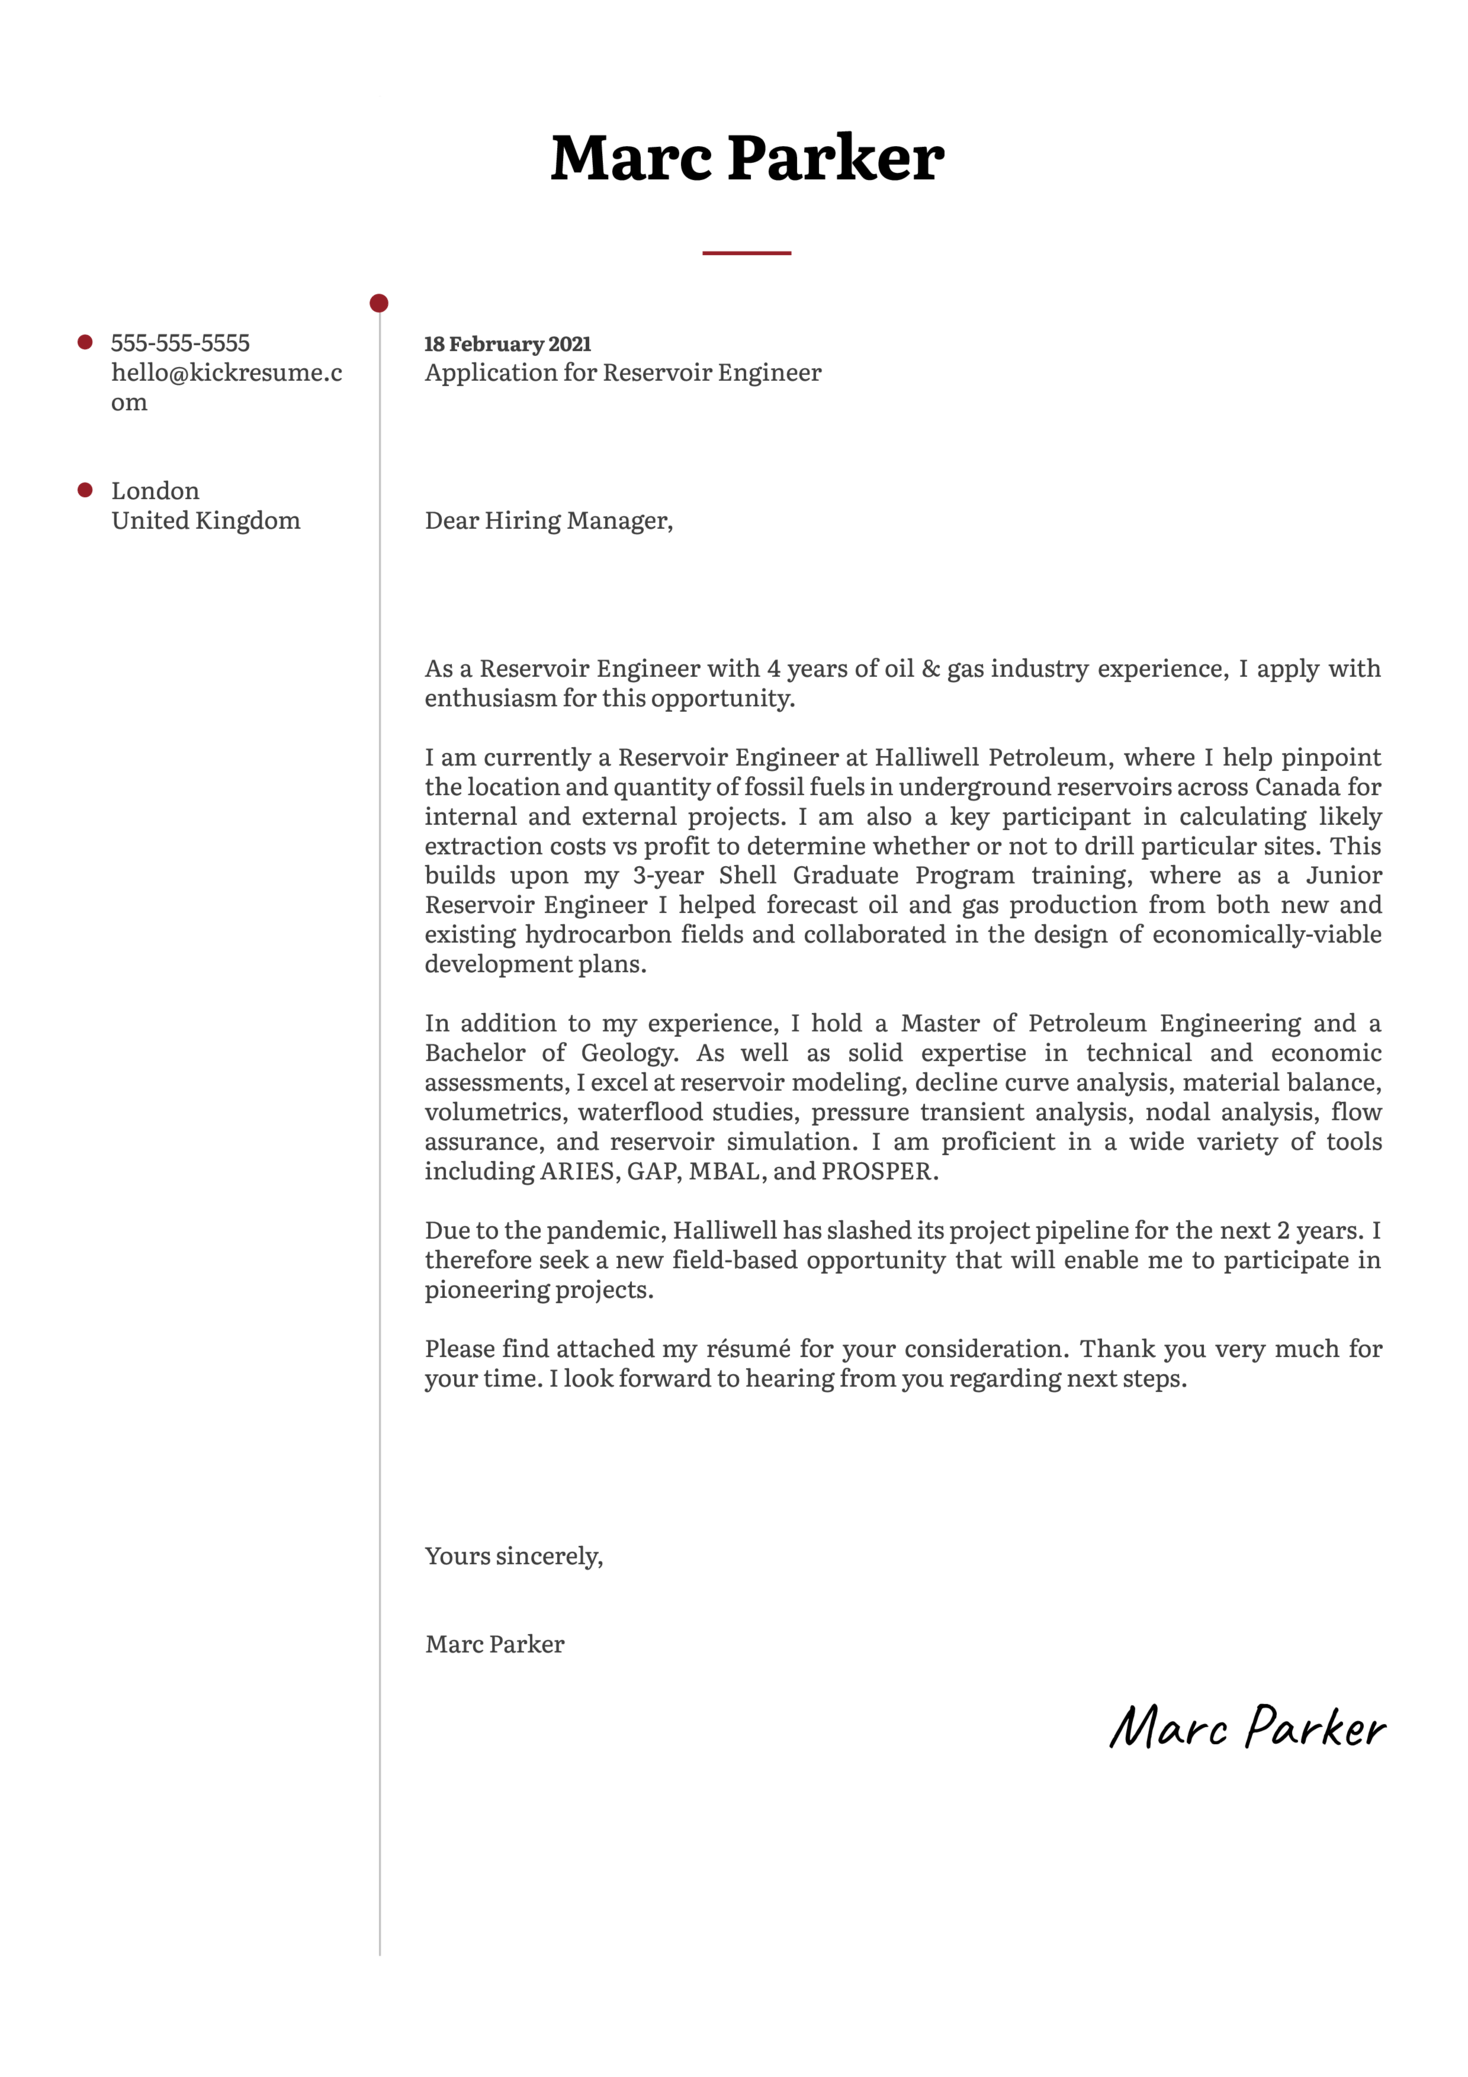 Reservoir Engineer Cover Letter Template